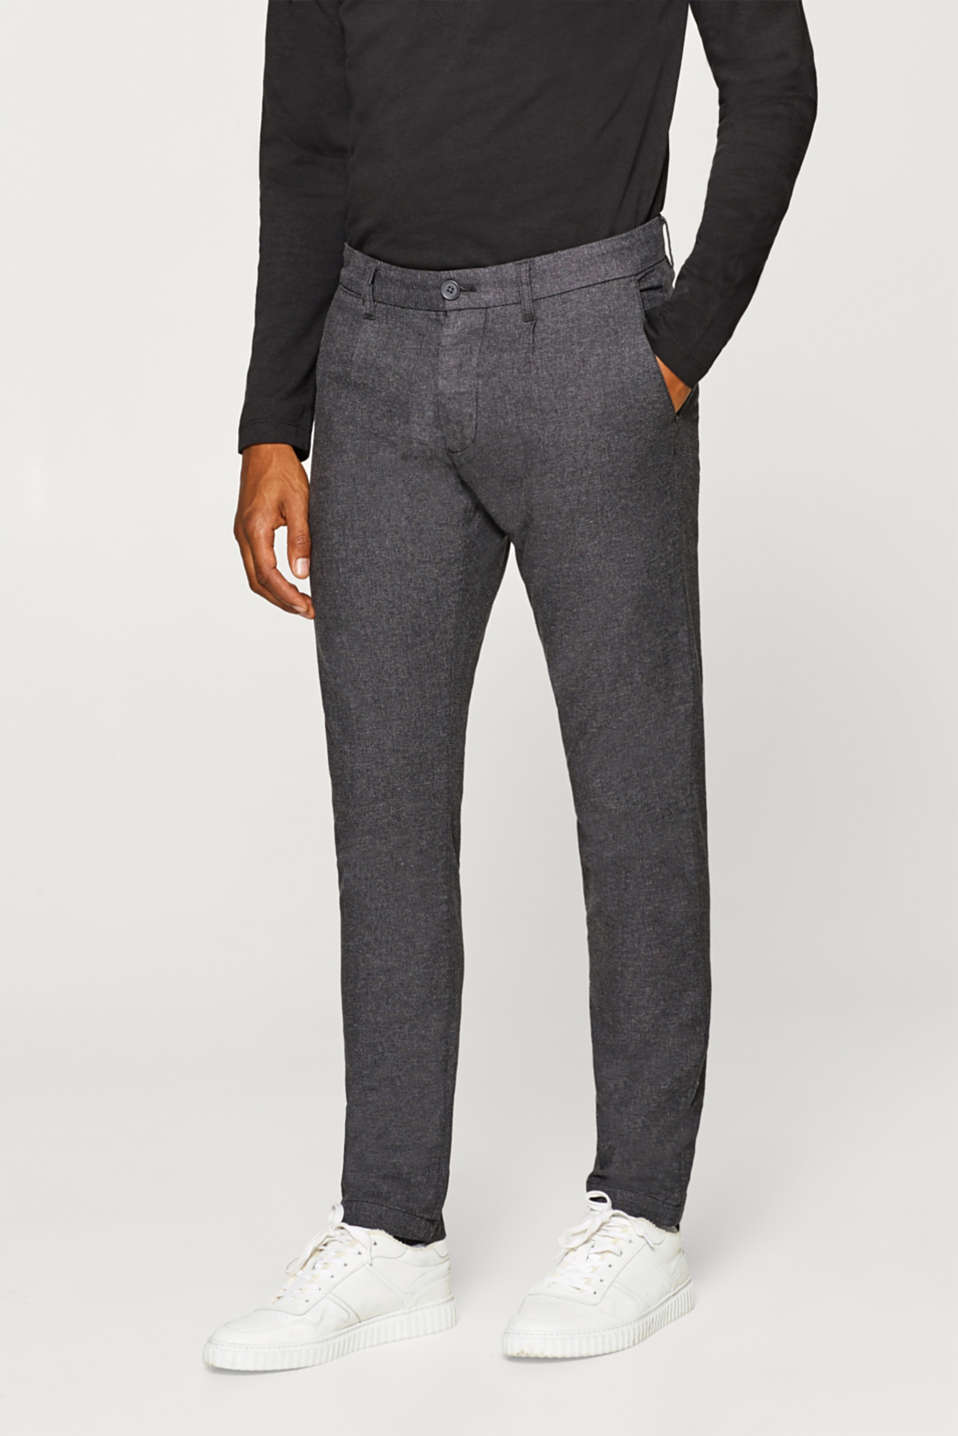 Esprit - Melange chinos in stretch cotton